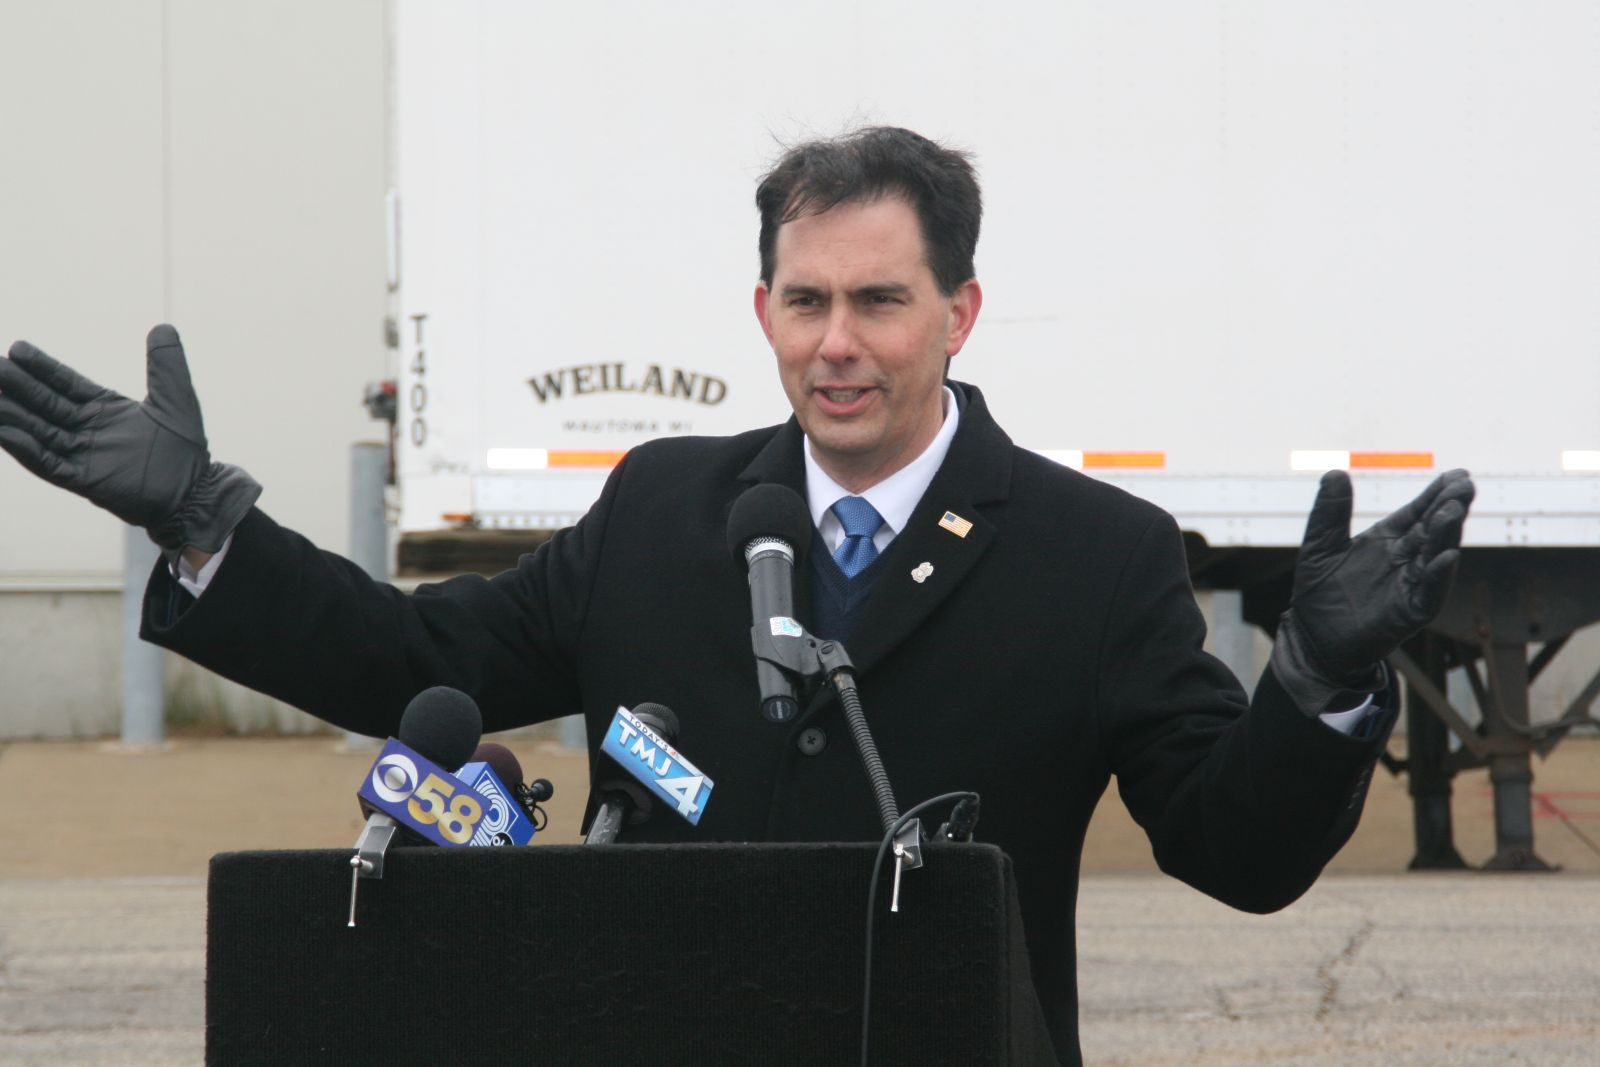 Governor Scott Walker. Photo by Jeramey Jannene.